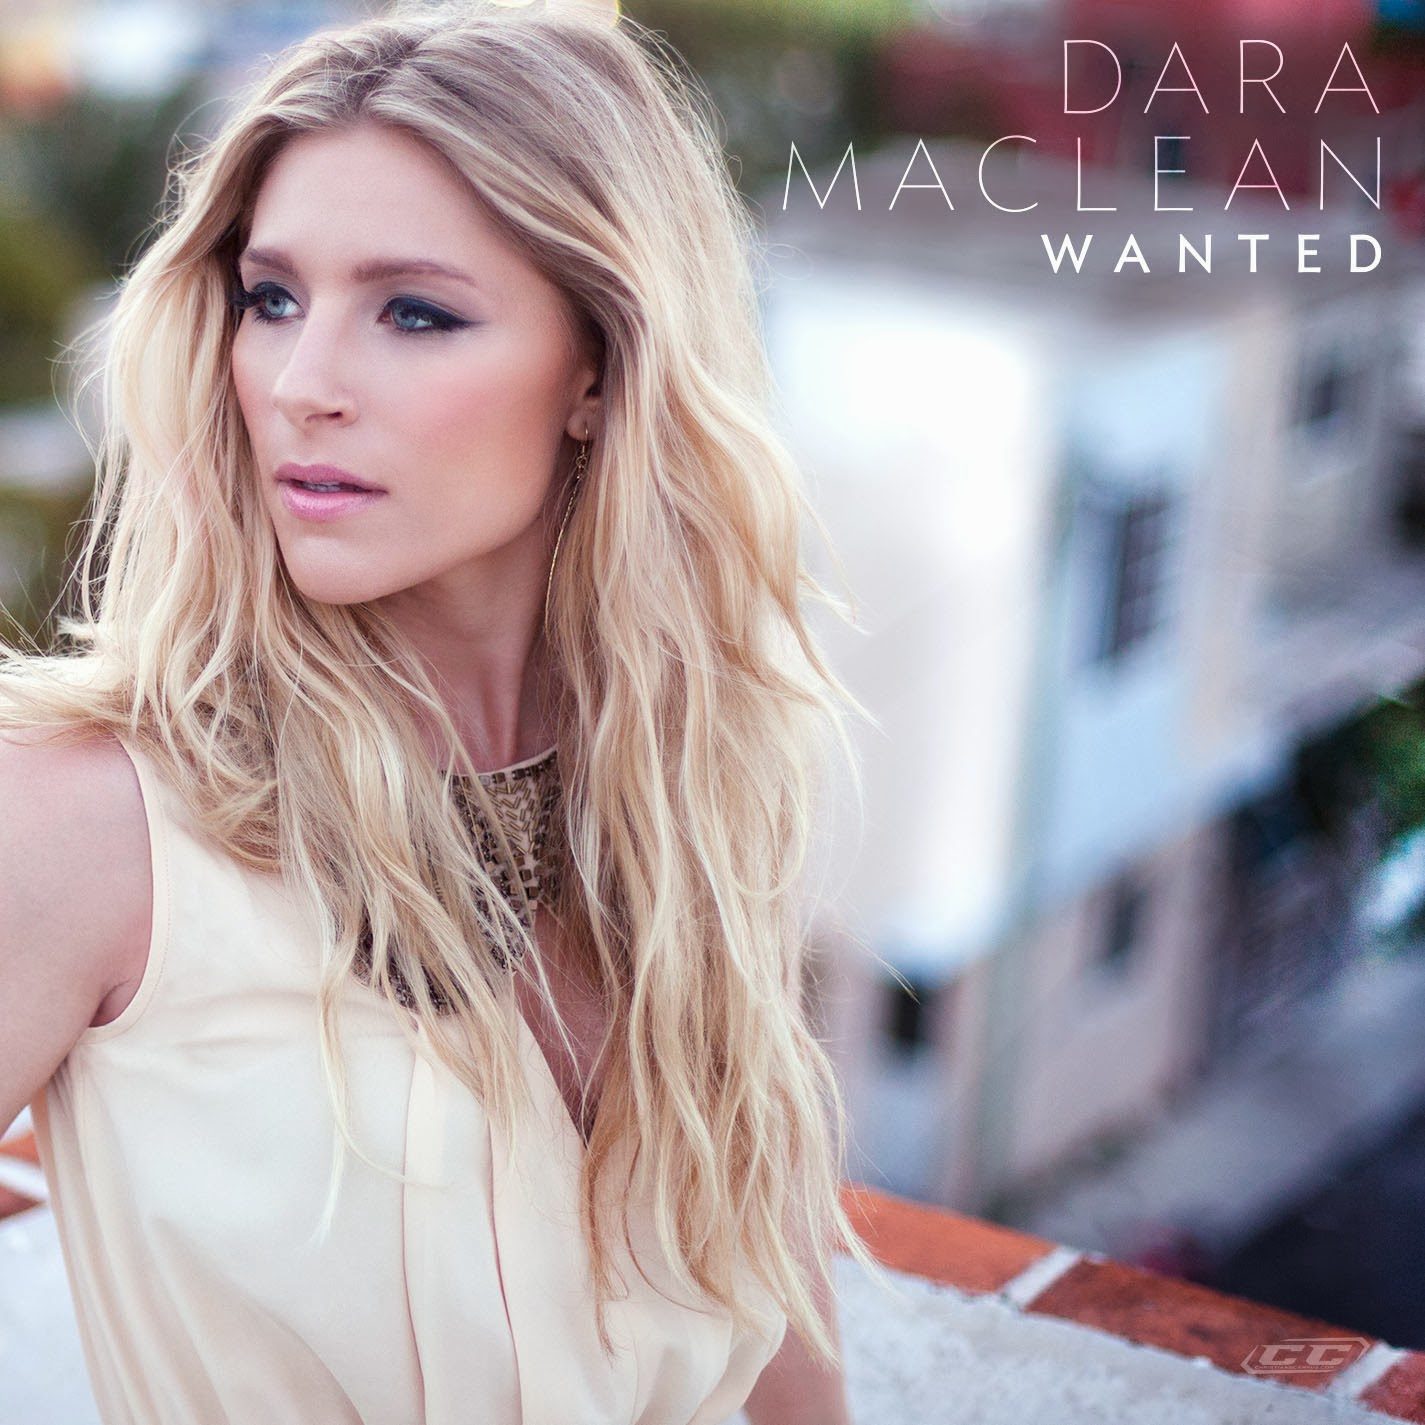 Dara Maclean - Wanted (2013) English Christian Album Download